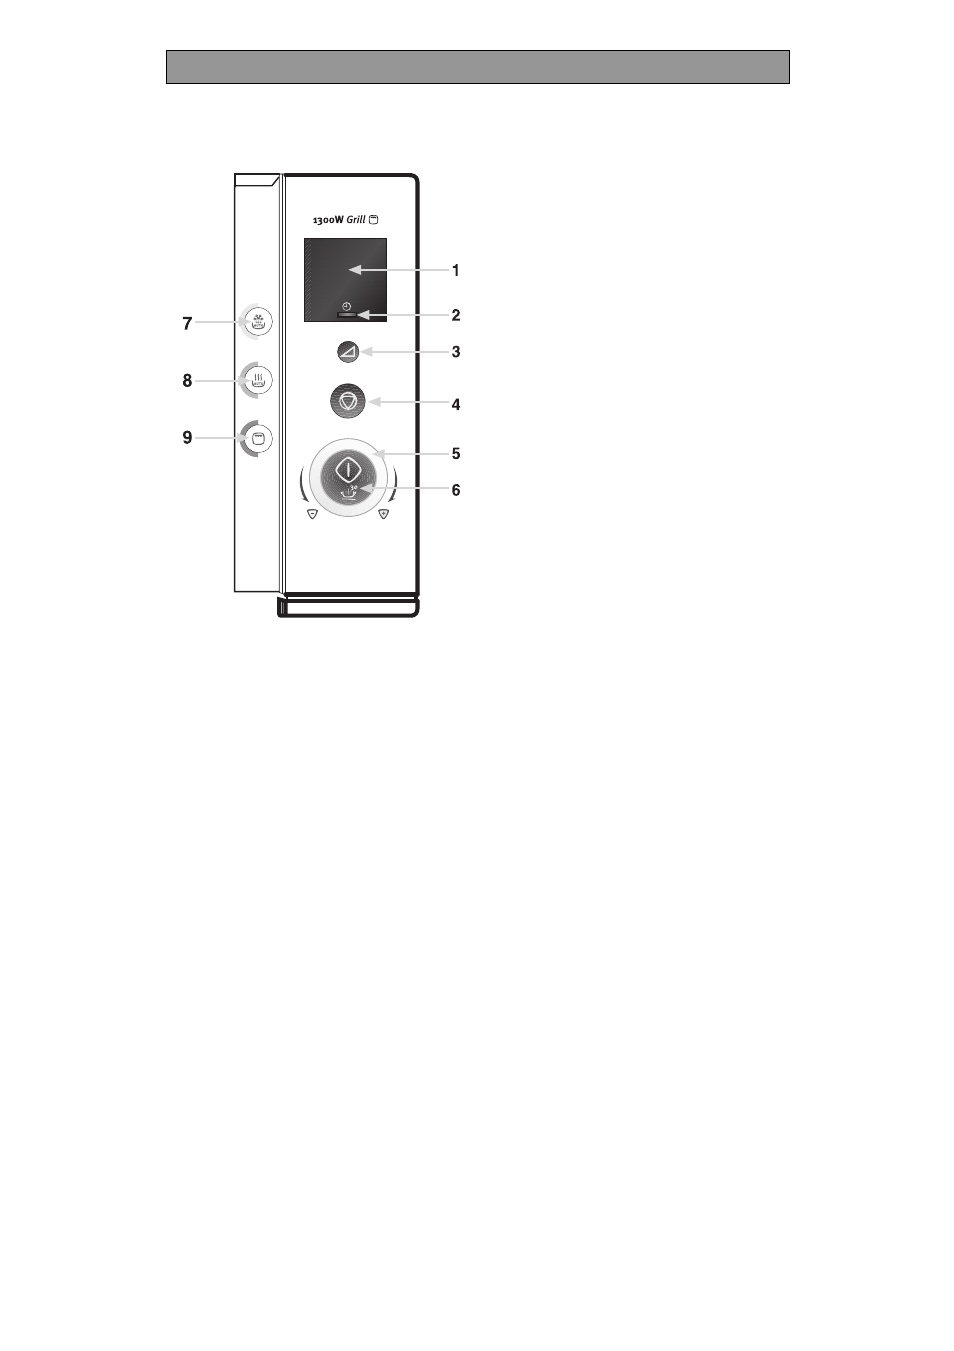 control panel electrolux ems2840 user manual page 11 28 rh manualsdir com electrolux ems 2840 service manual electrolux ems 2840 service manual